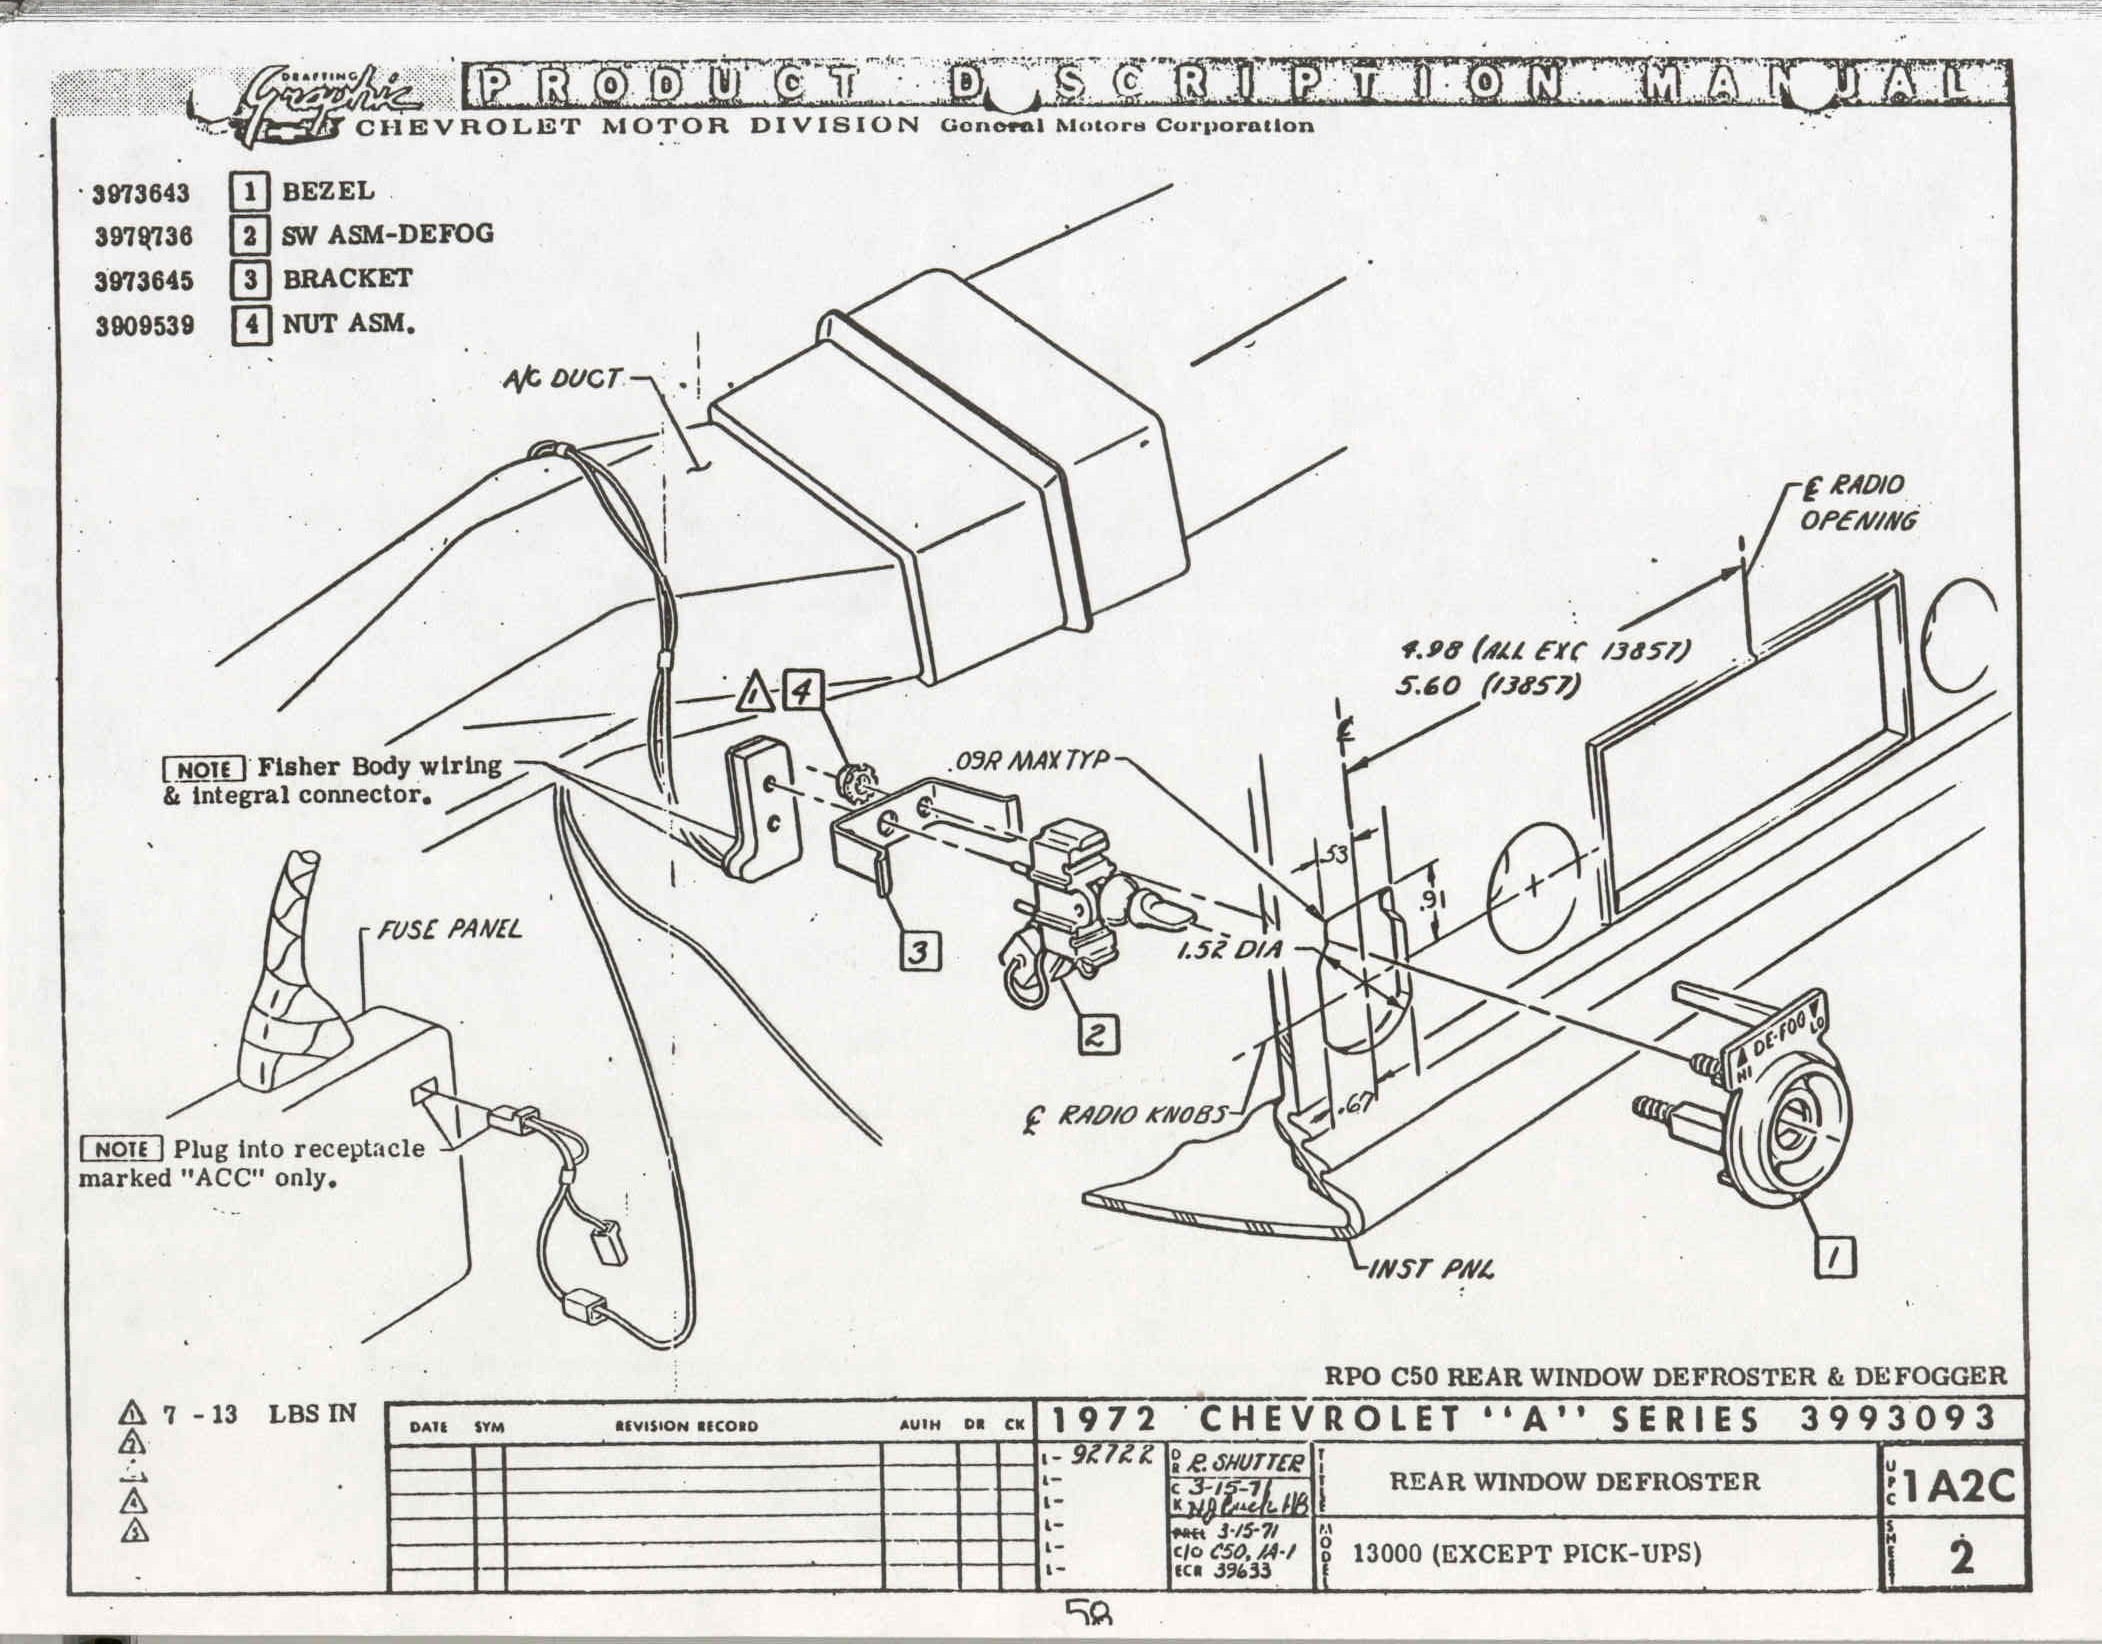 1972 chevelle wire harness diagram wiring diagram 20191970 chevelle wire diagram wiring diagramwiring diagram 1969 camaro cowl hood wiring diagram 1970 chevelle